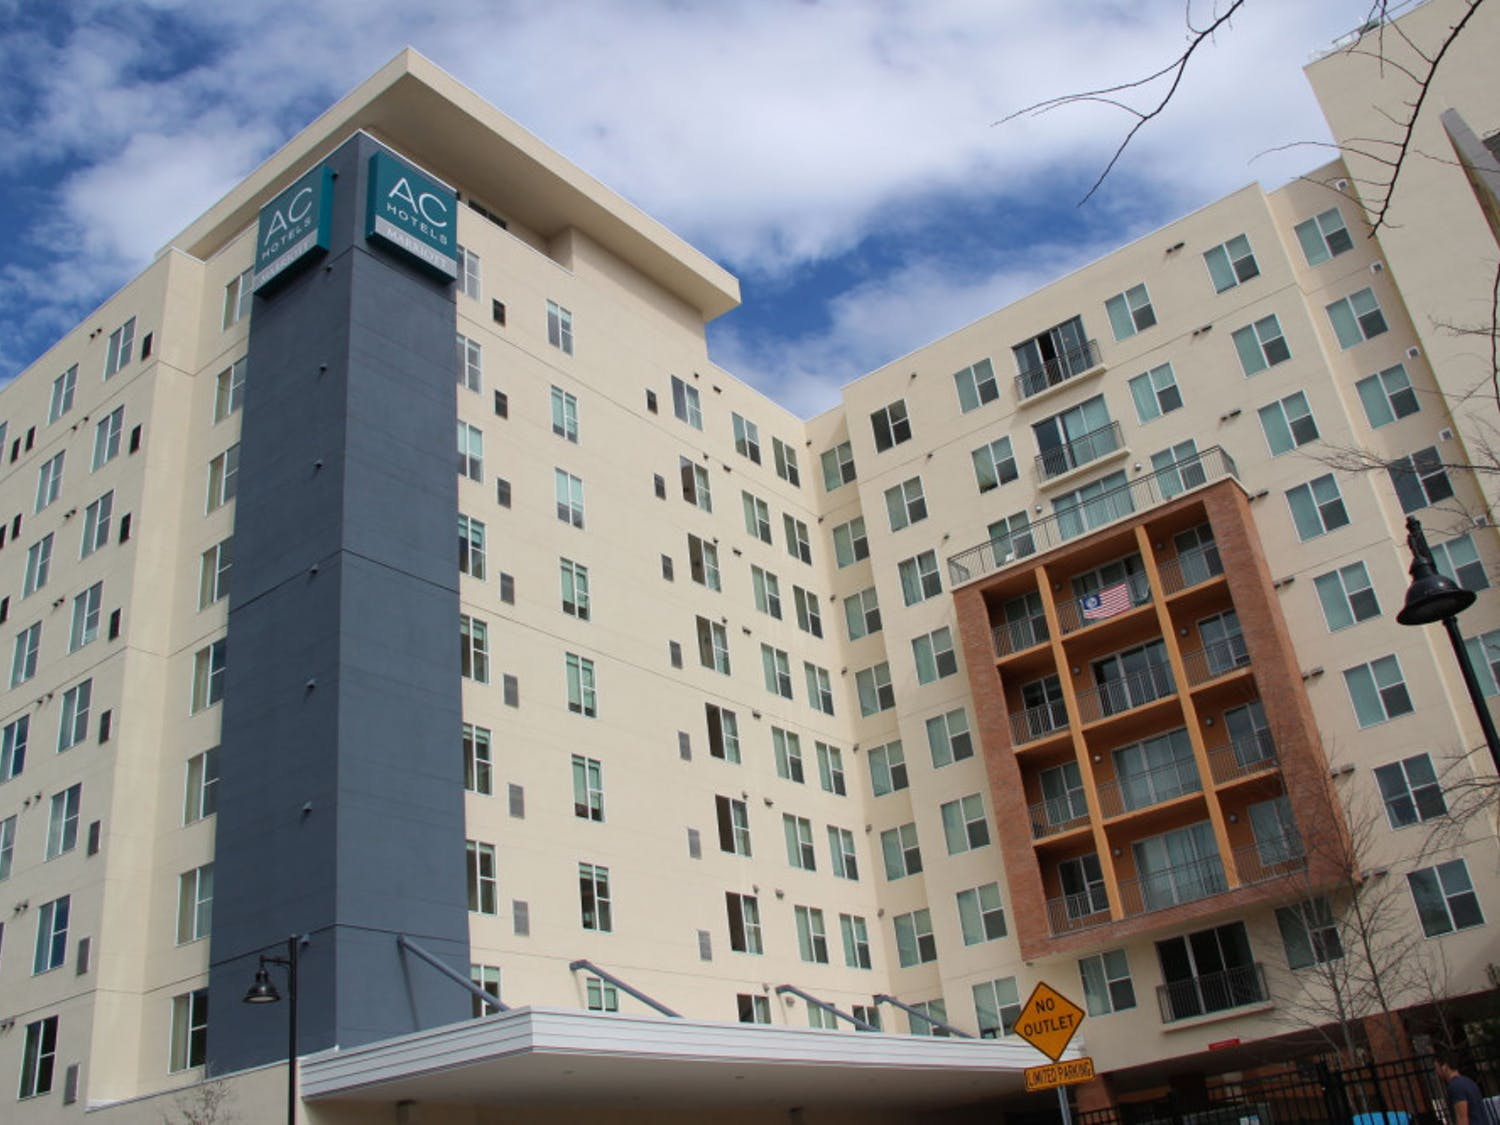 The new AC Hotel Gainesville Downtown overlooks Midtown on NW 14th Street. The 10-story hotel is set to open on Feb. 20.